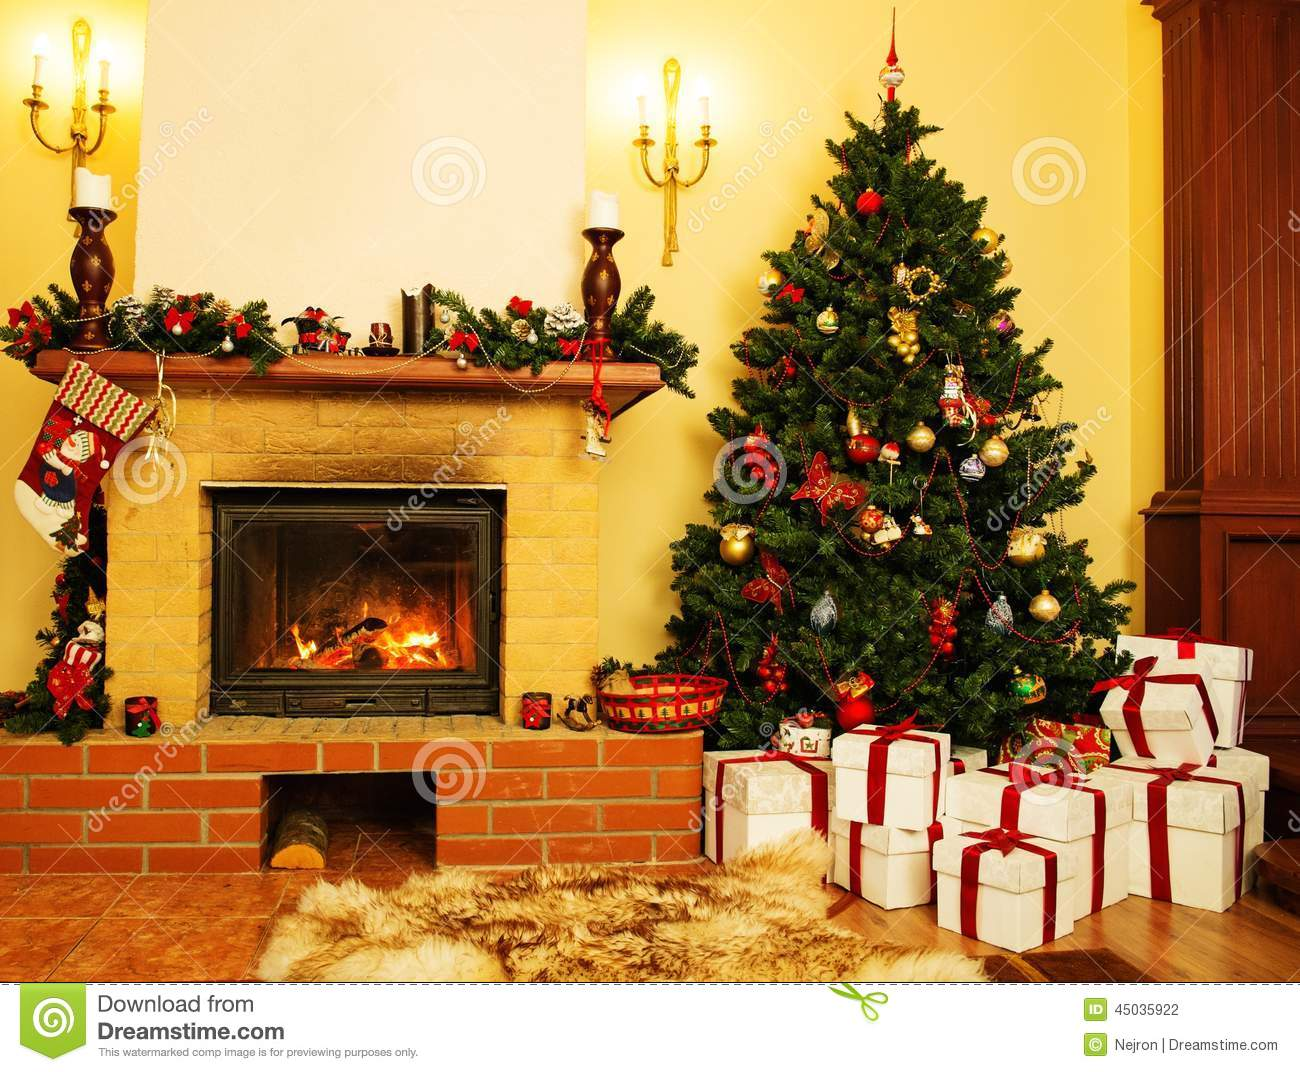 No l a d cor l 39 int rieur de maison photo stock image for Deco interieur noel